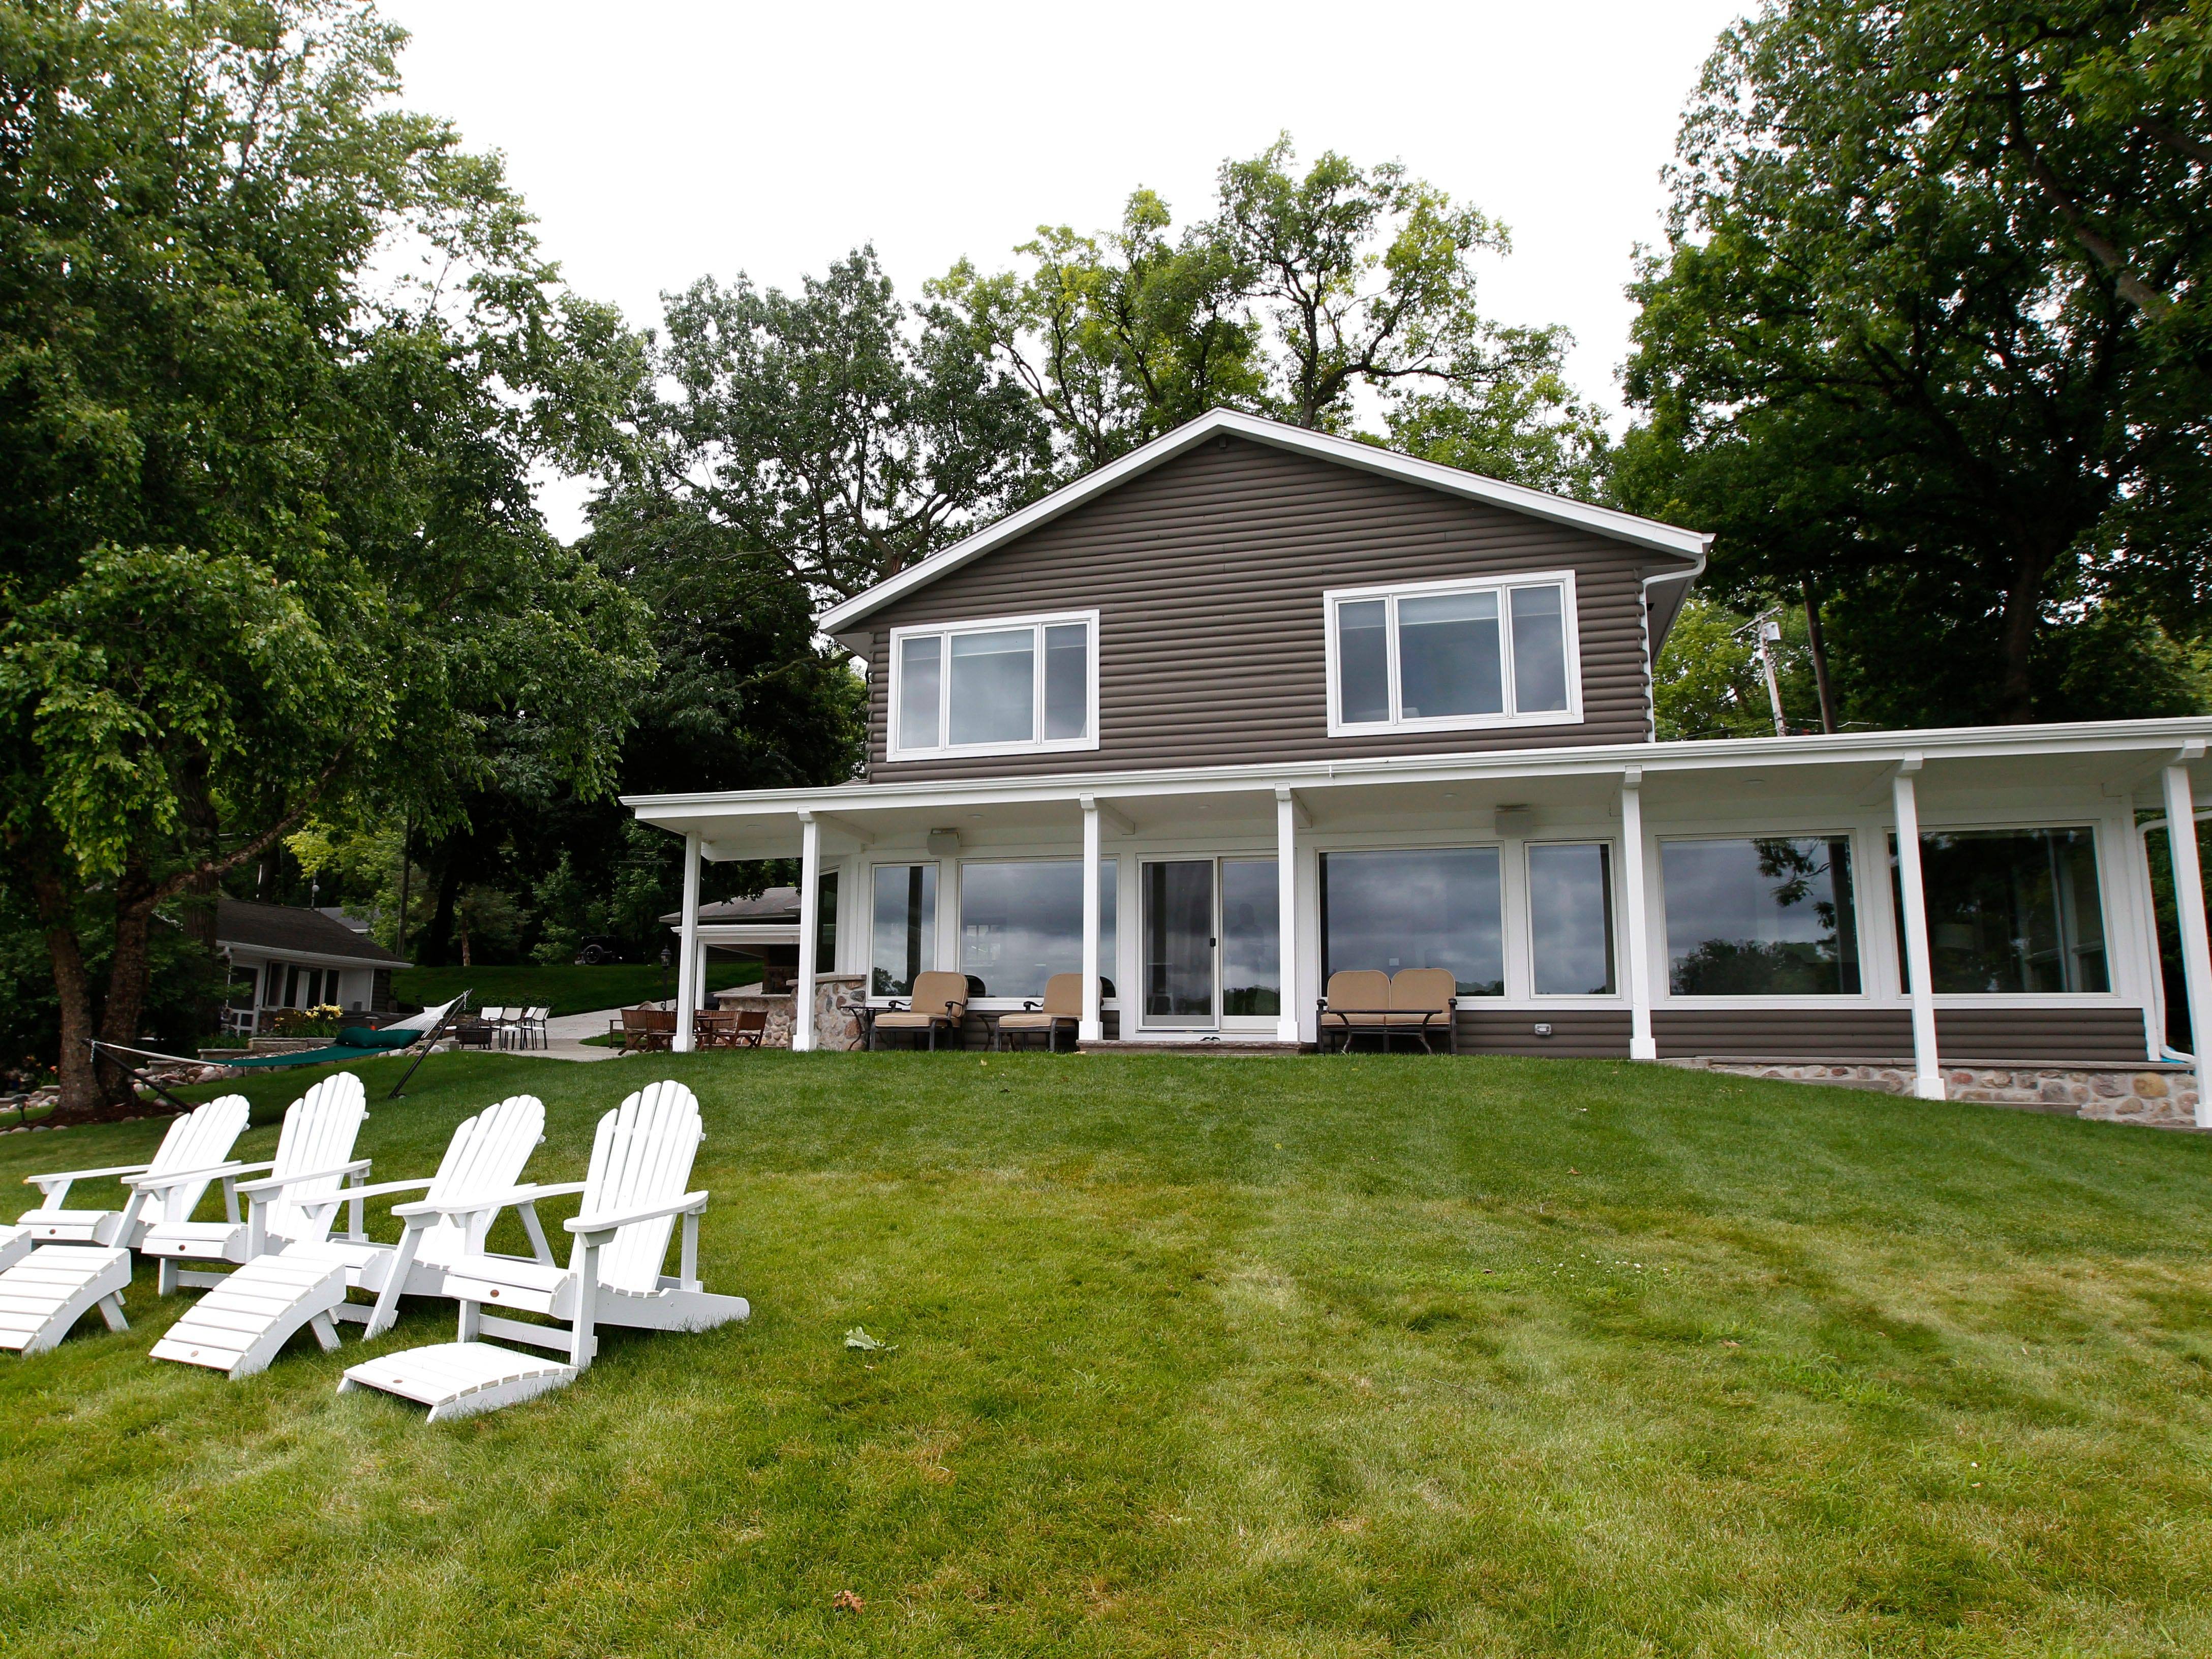 The two-story home has 2,000 square feet with three bedrooms and two bathrooms. The renovation were done in 2016.